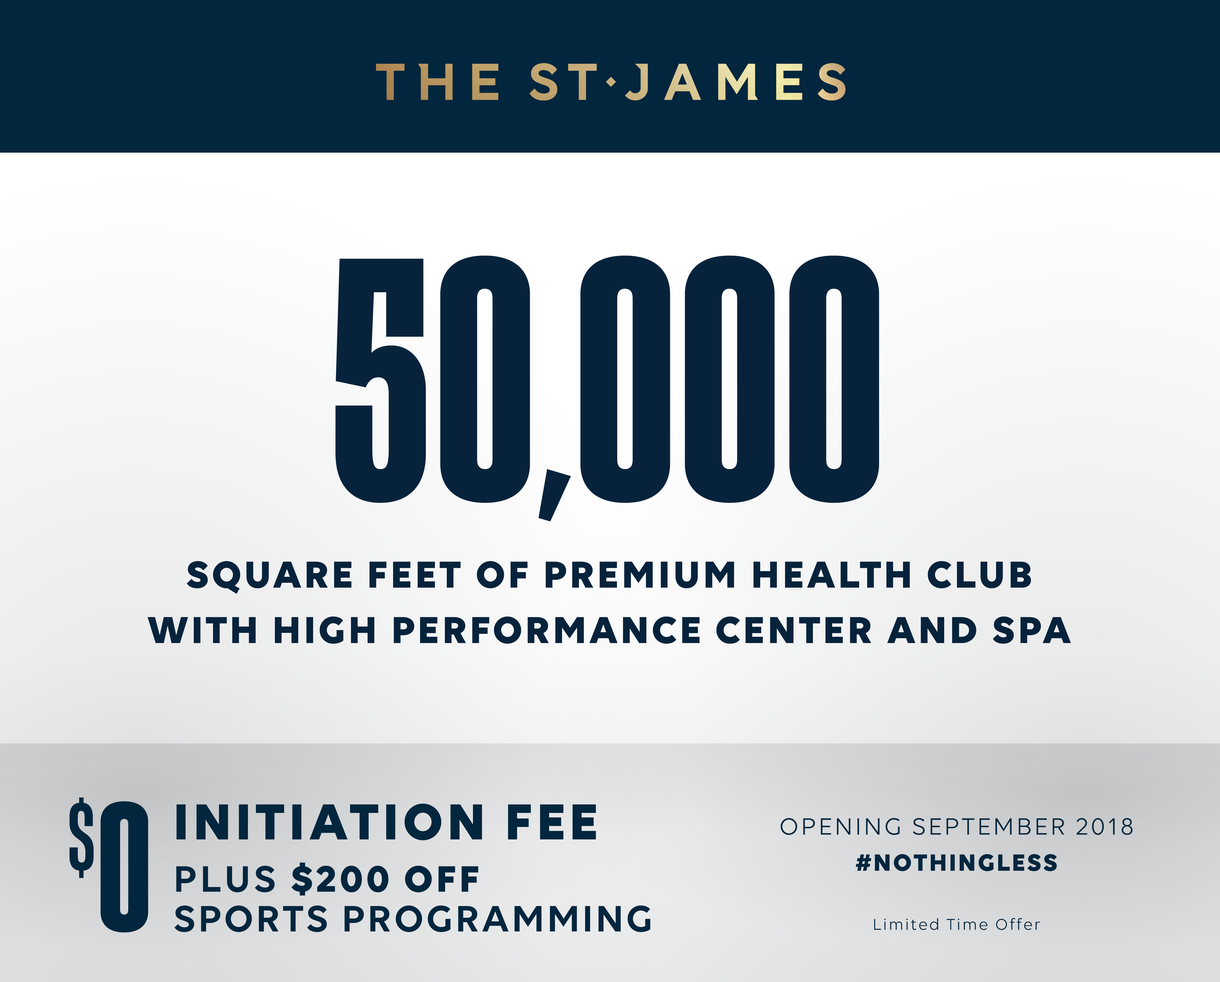 THE ST. JAMES: Grand Opening in September!